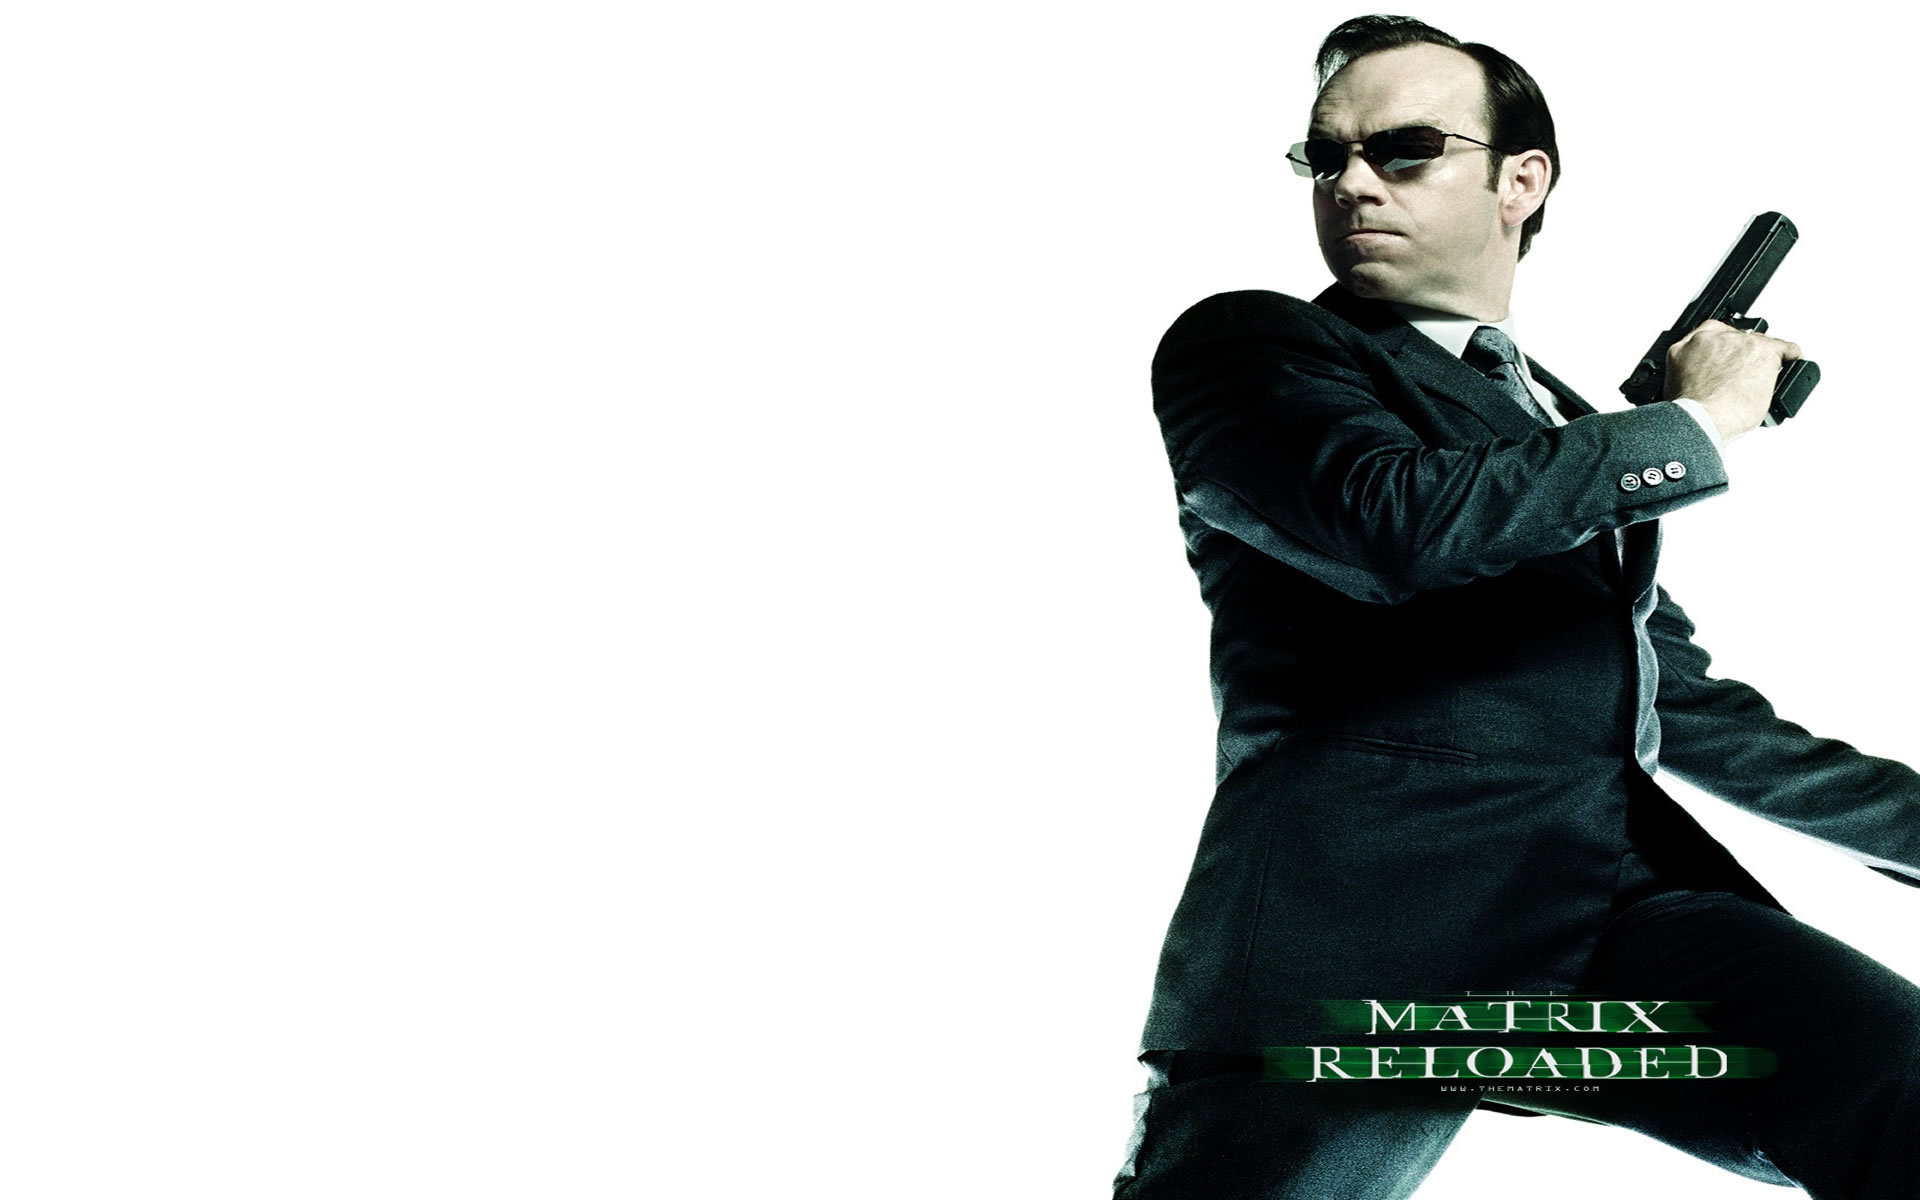 Agente Smith Wallpaper Matrix.